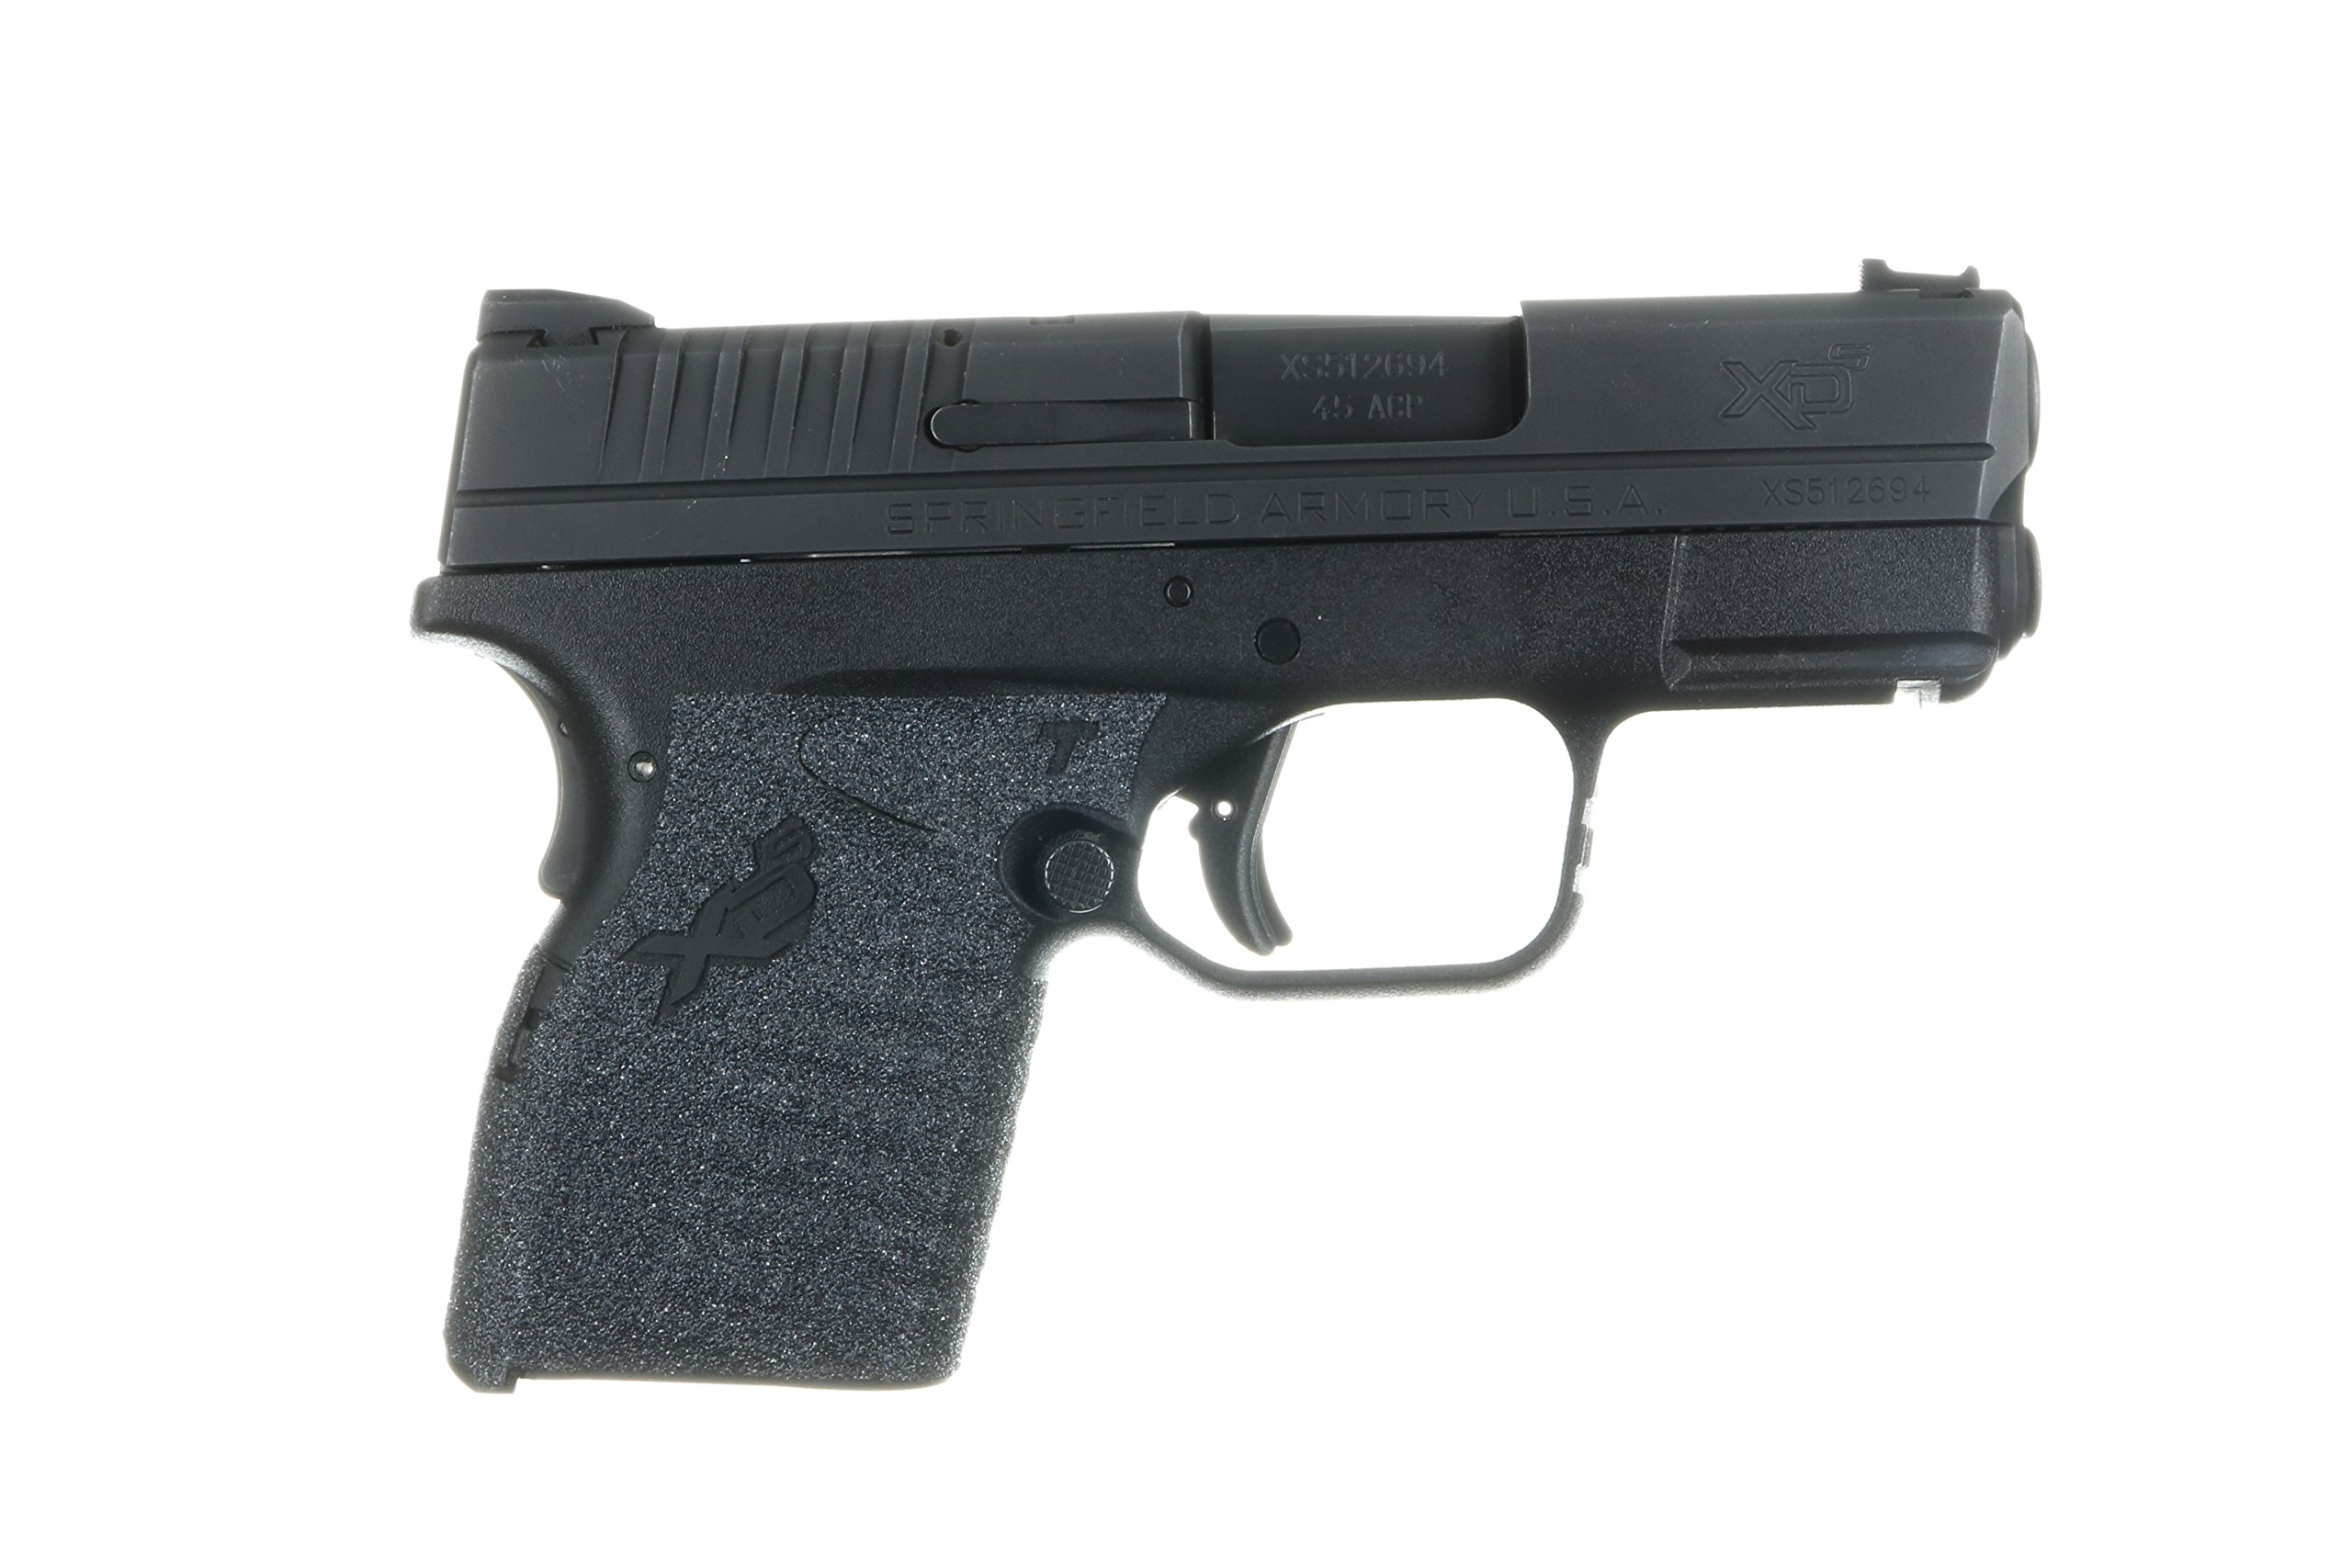 Talon Grips Talon Grip For Springfield Xds With Large